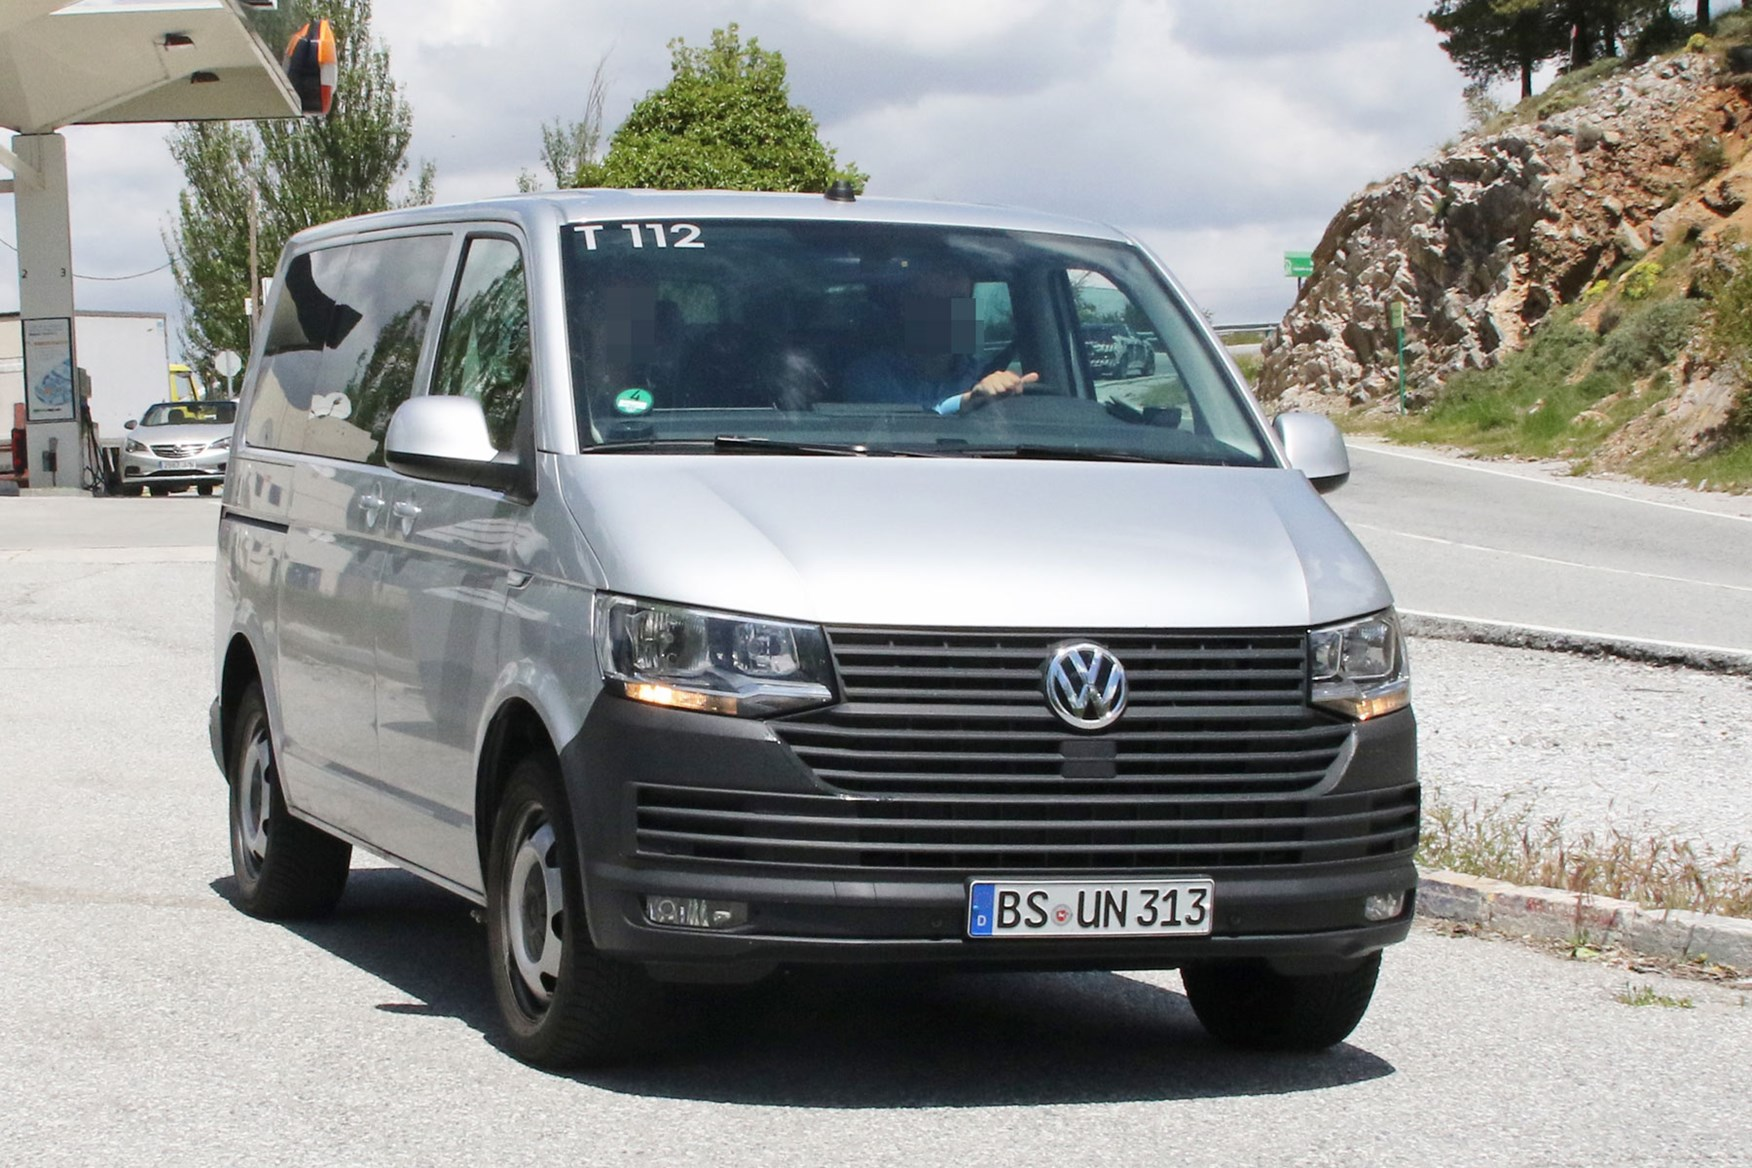 vw transporter 2019 facelift latest spy shots and info. Black Bedroom Furniture Sets. Home Design Ideas